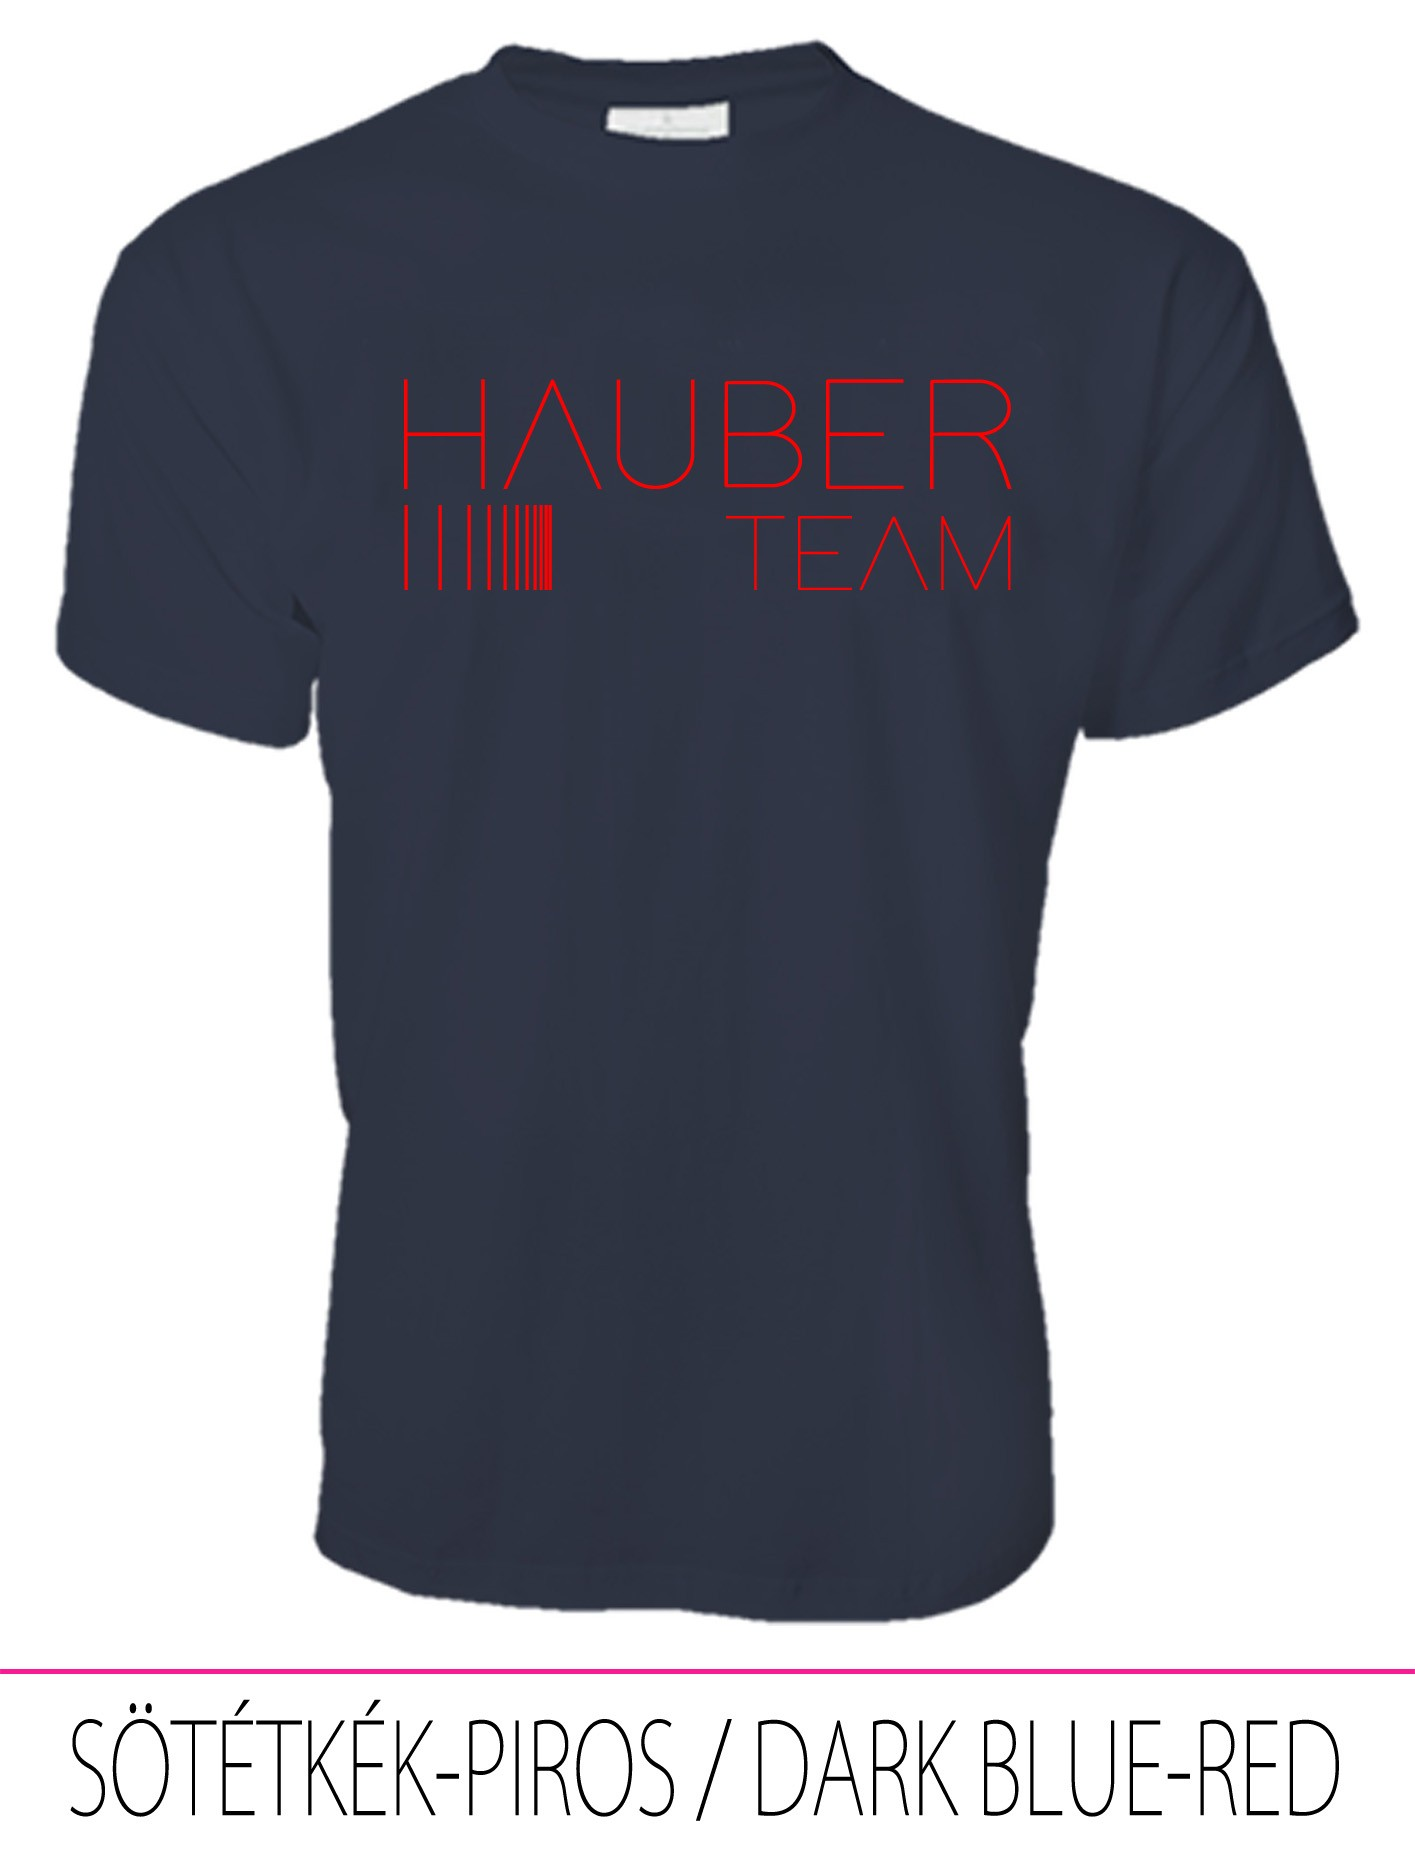 MEN CREW NECK T-SHIRT / HAUBER TEAM DARK BLUE-RED